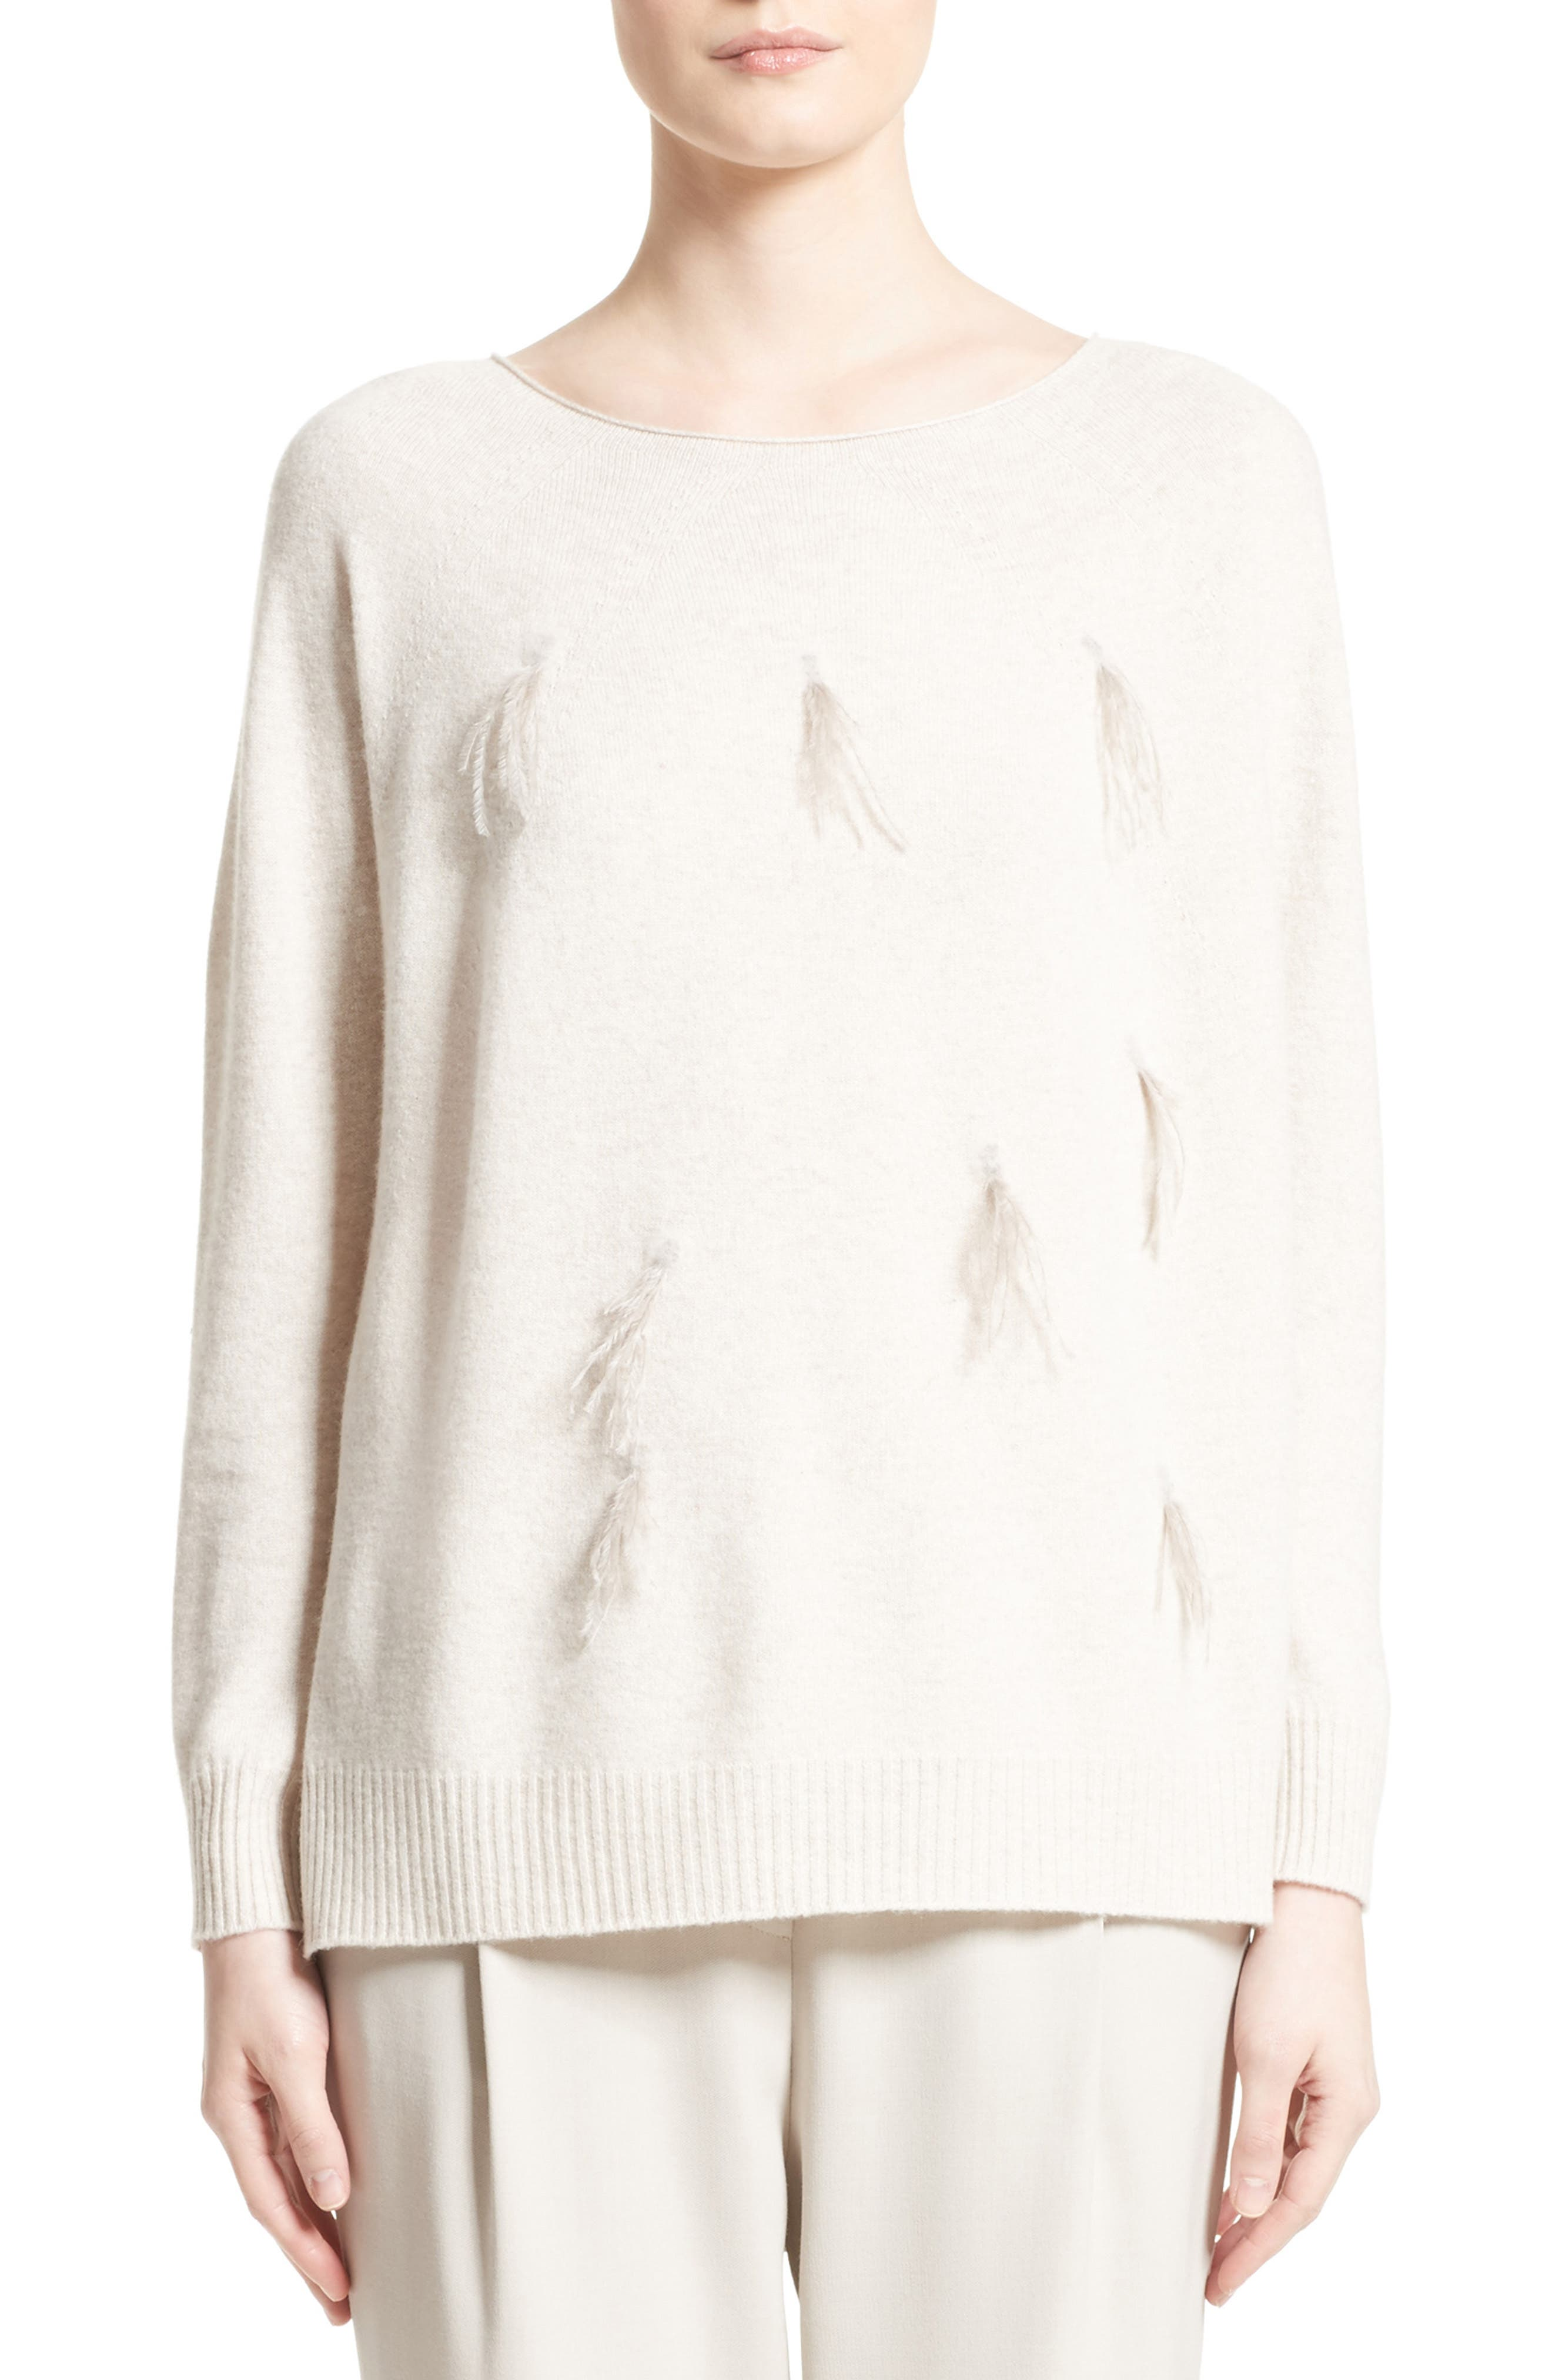 Needle Punch Ostrich Feather Trim Sweater,                         Main,                         color, Oatmeal